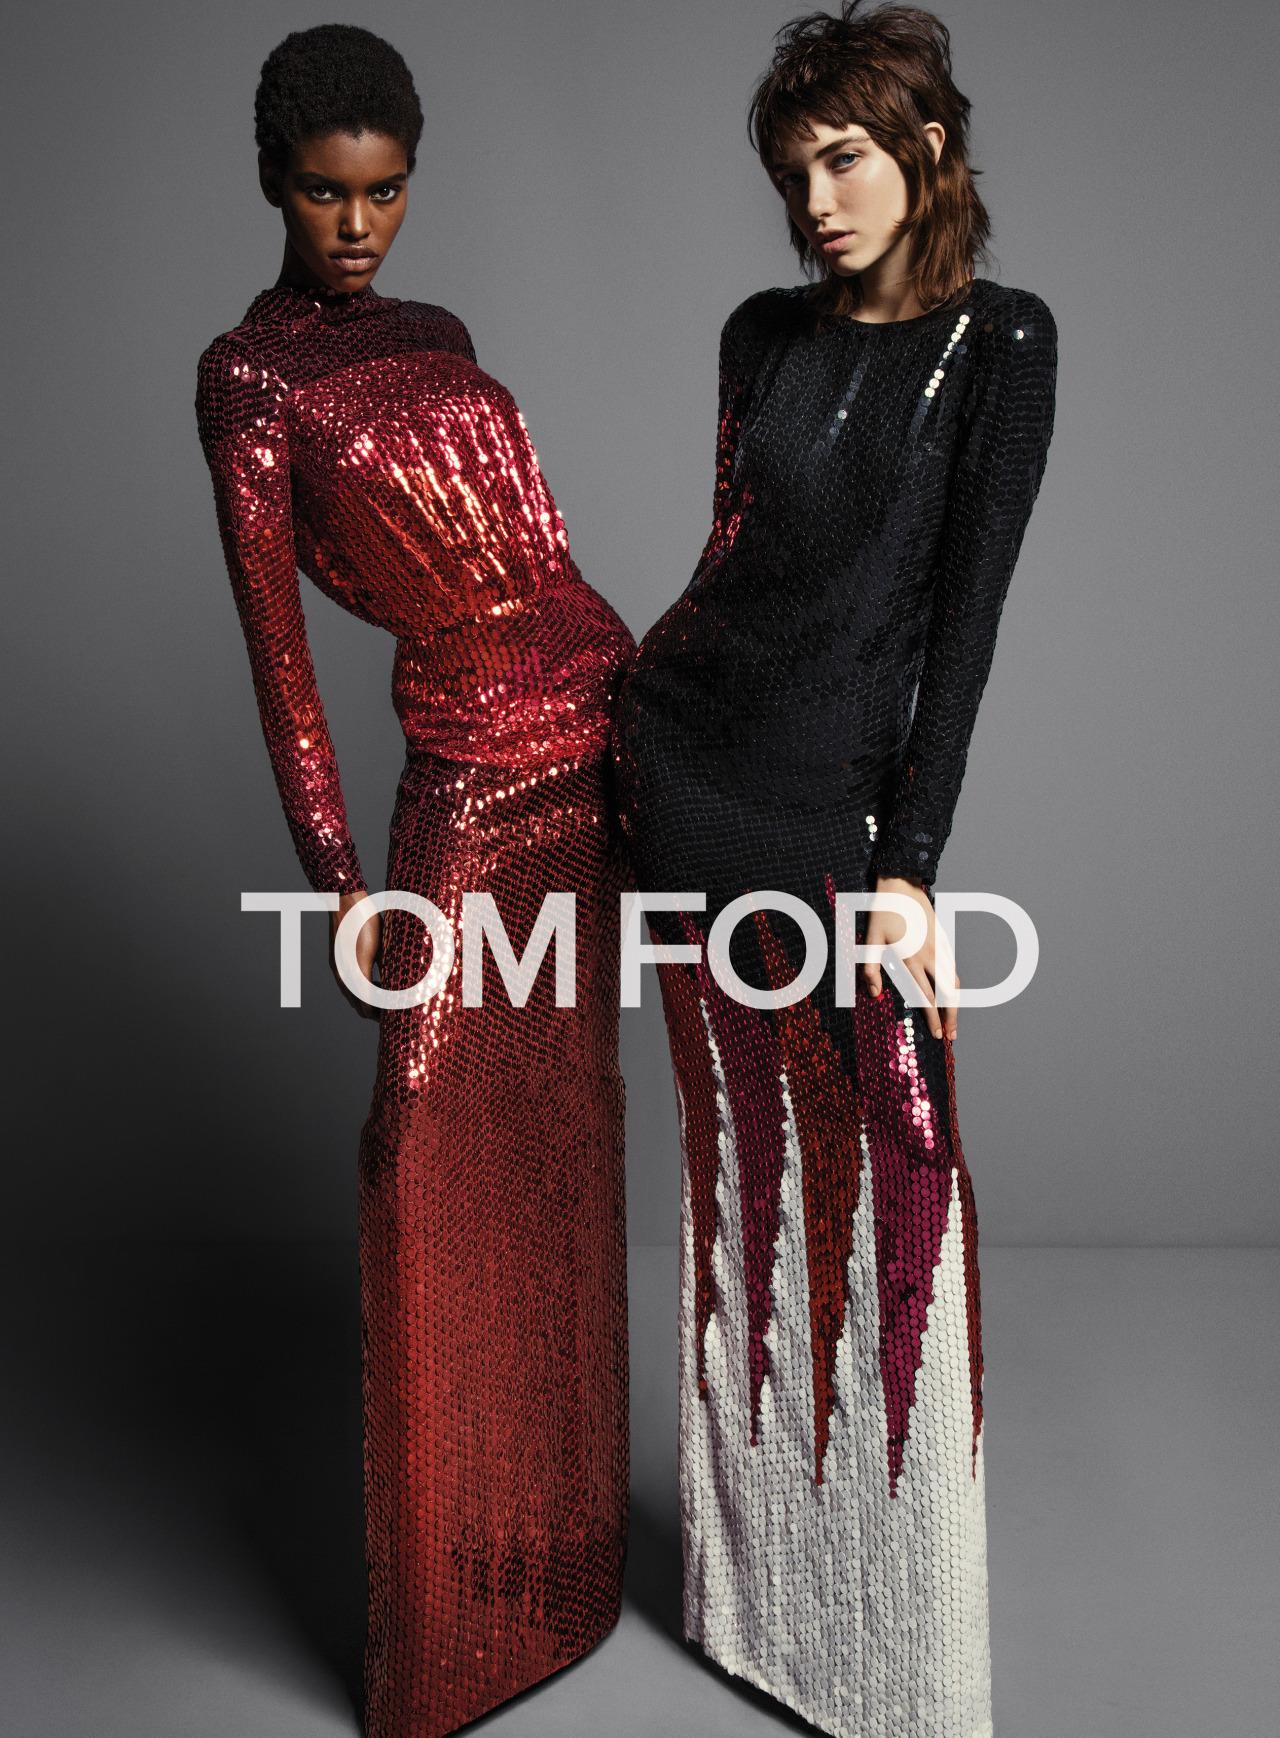 Tom Ford S Fall Campaign Serves Super Seventies Glam With A Side Of Intrigue